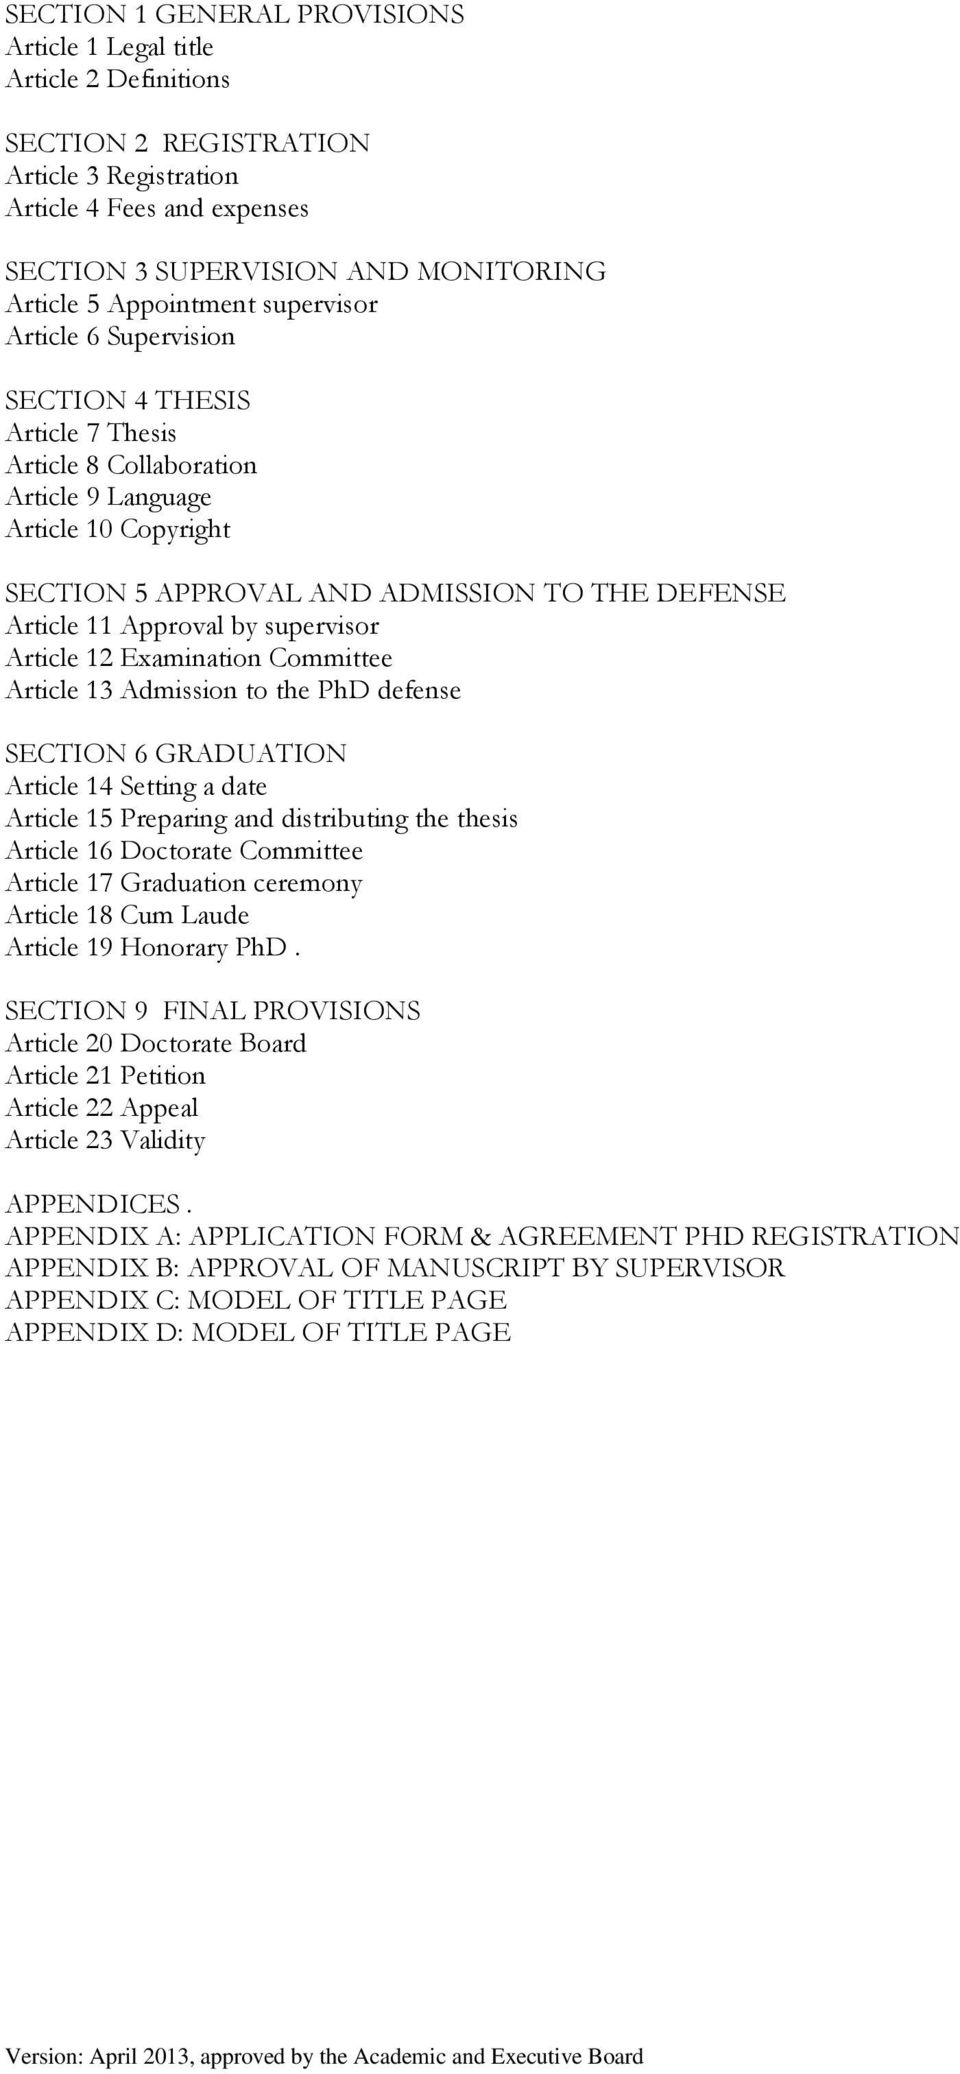 11 Approval by supervisor Article 12 Examination Committee Article 13 Admission to the PhD defense SECTION 6 GRADUATION Article 14 Setting a date Article 15 Preparing and distributing the thesis